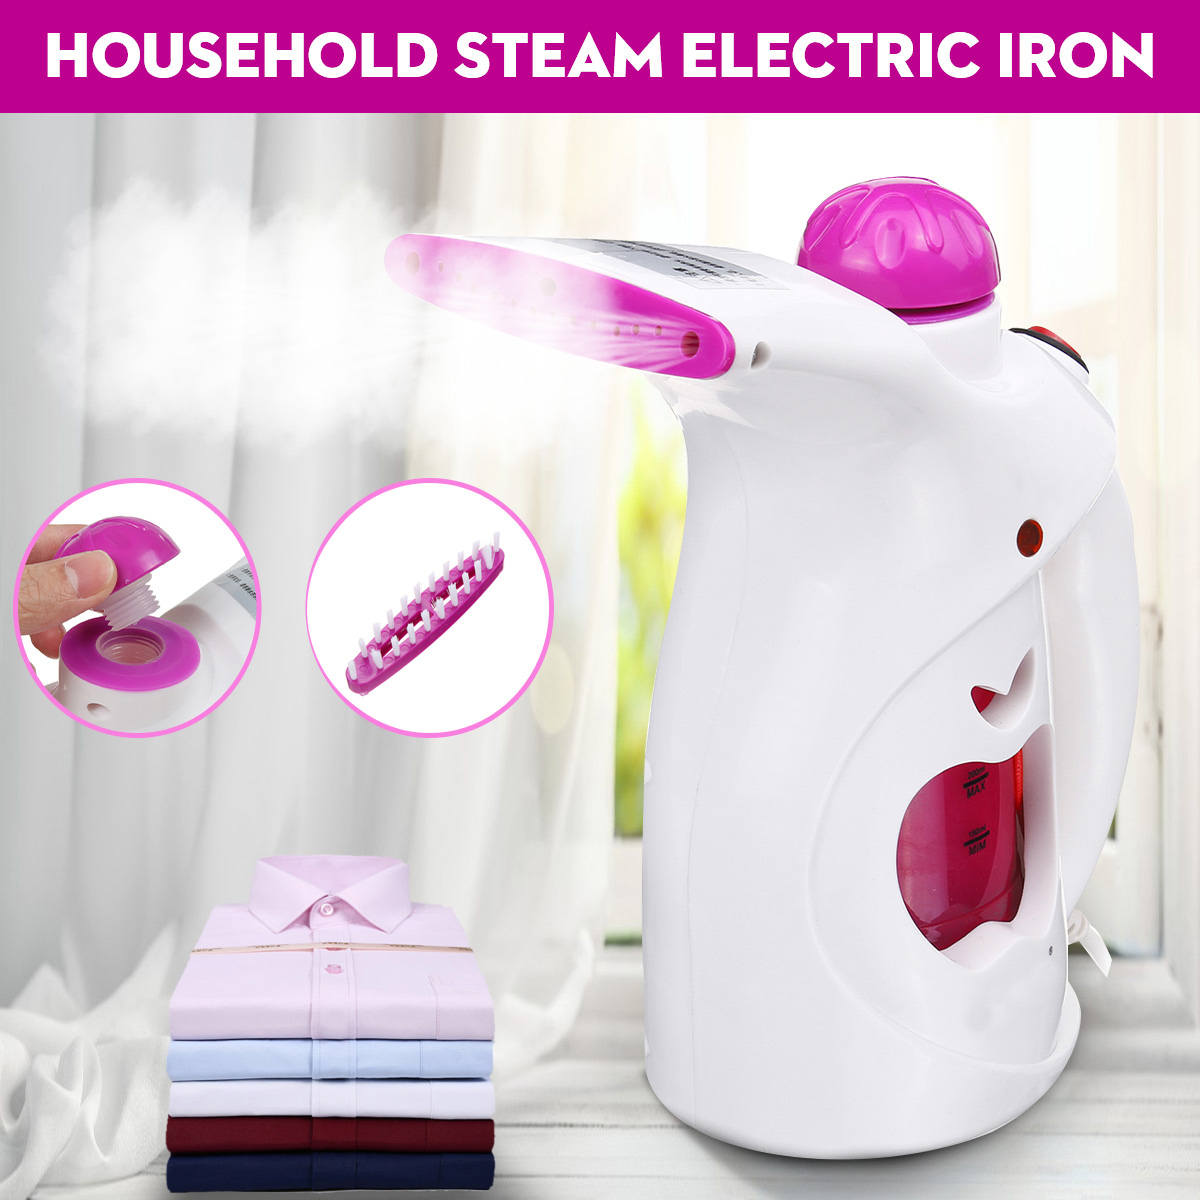 200ml HandHeld Garment Steamer Electric Steam Iron For Clothes Travel Home Electric Iron Humidifier Facial Steamer